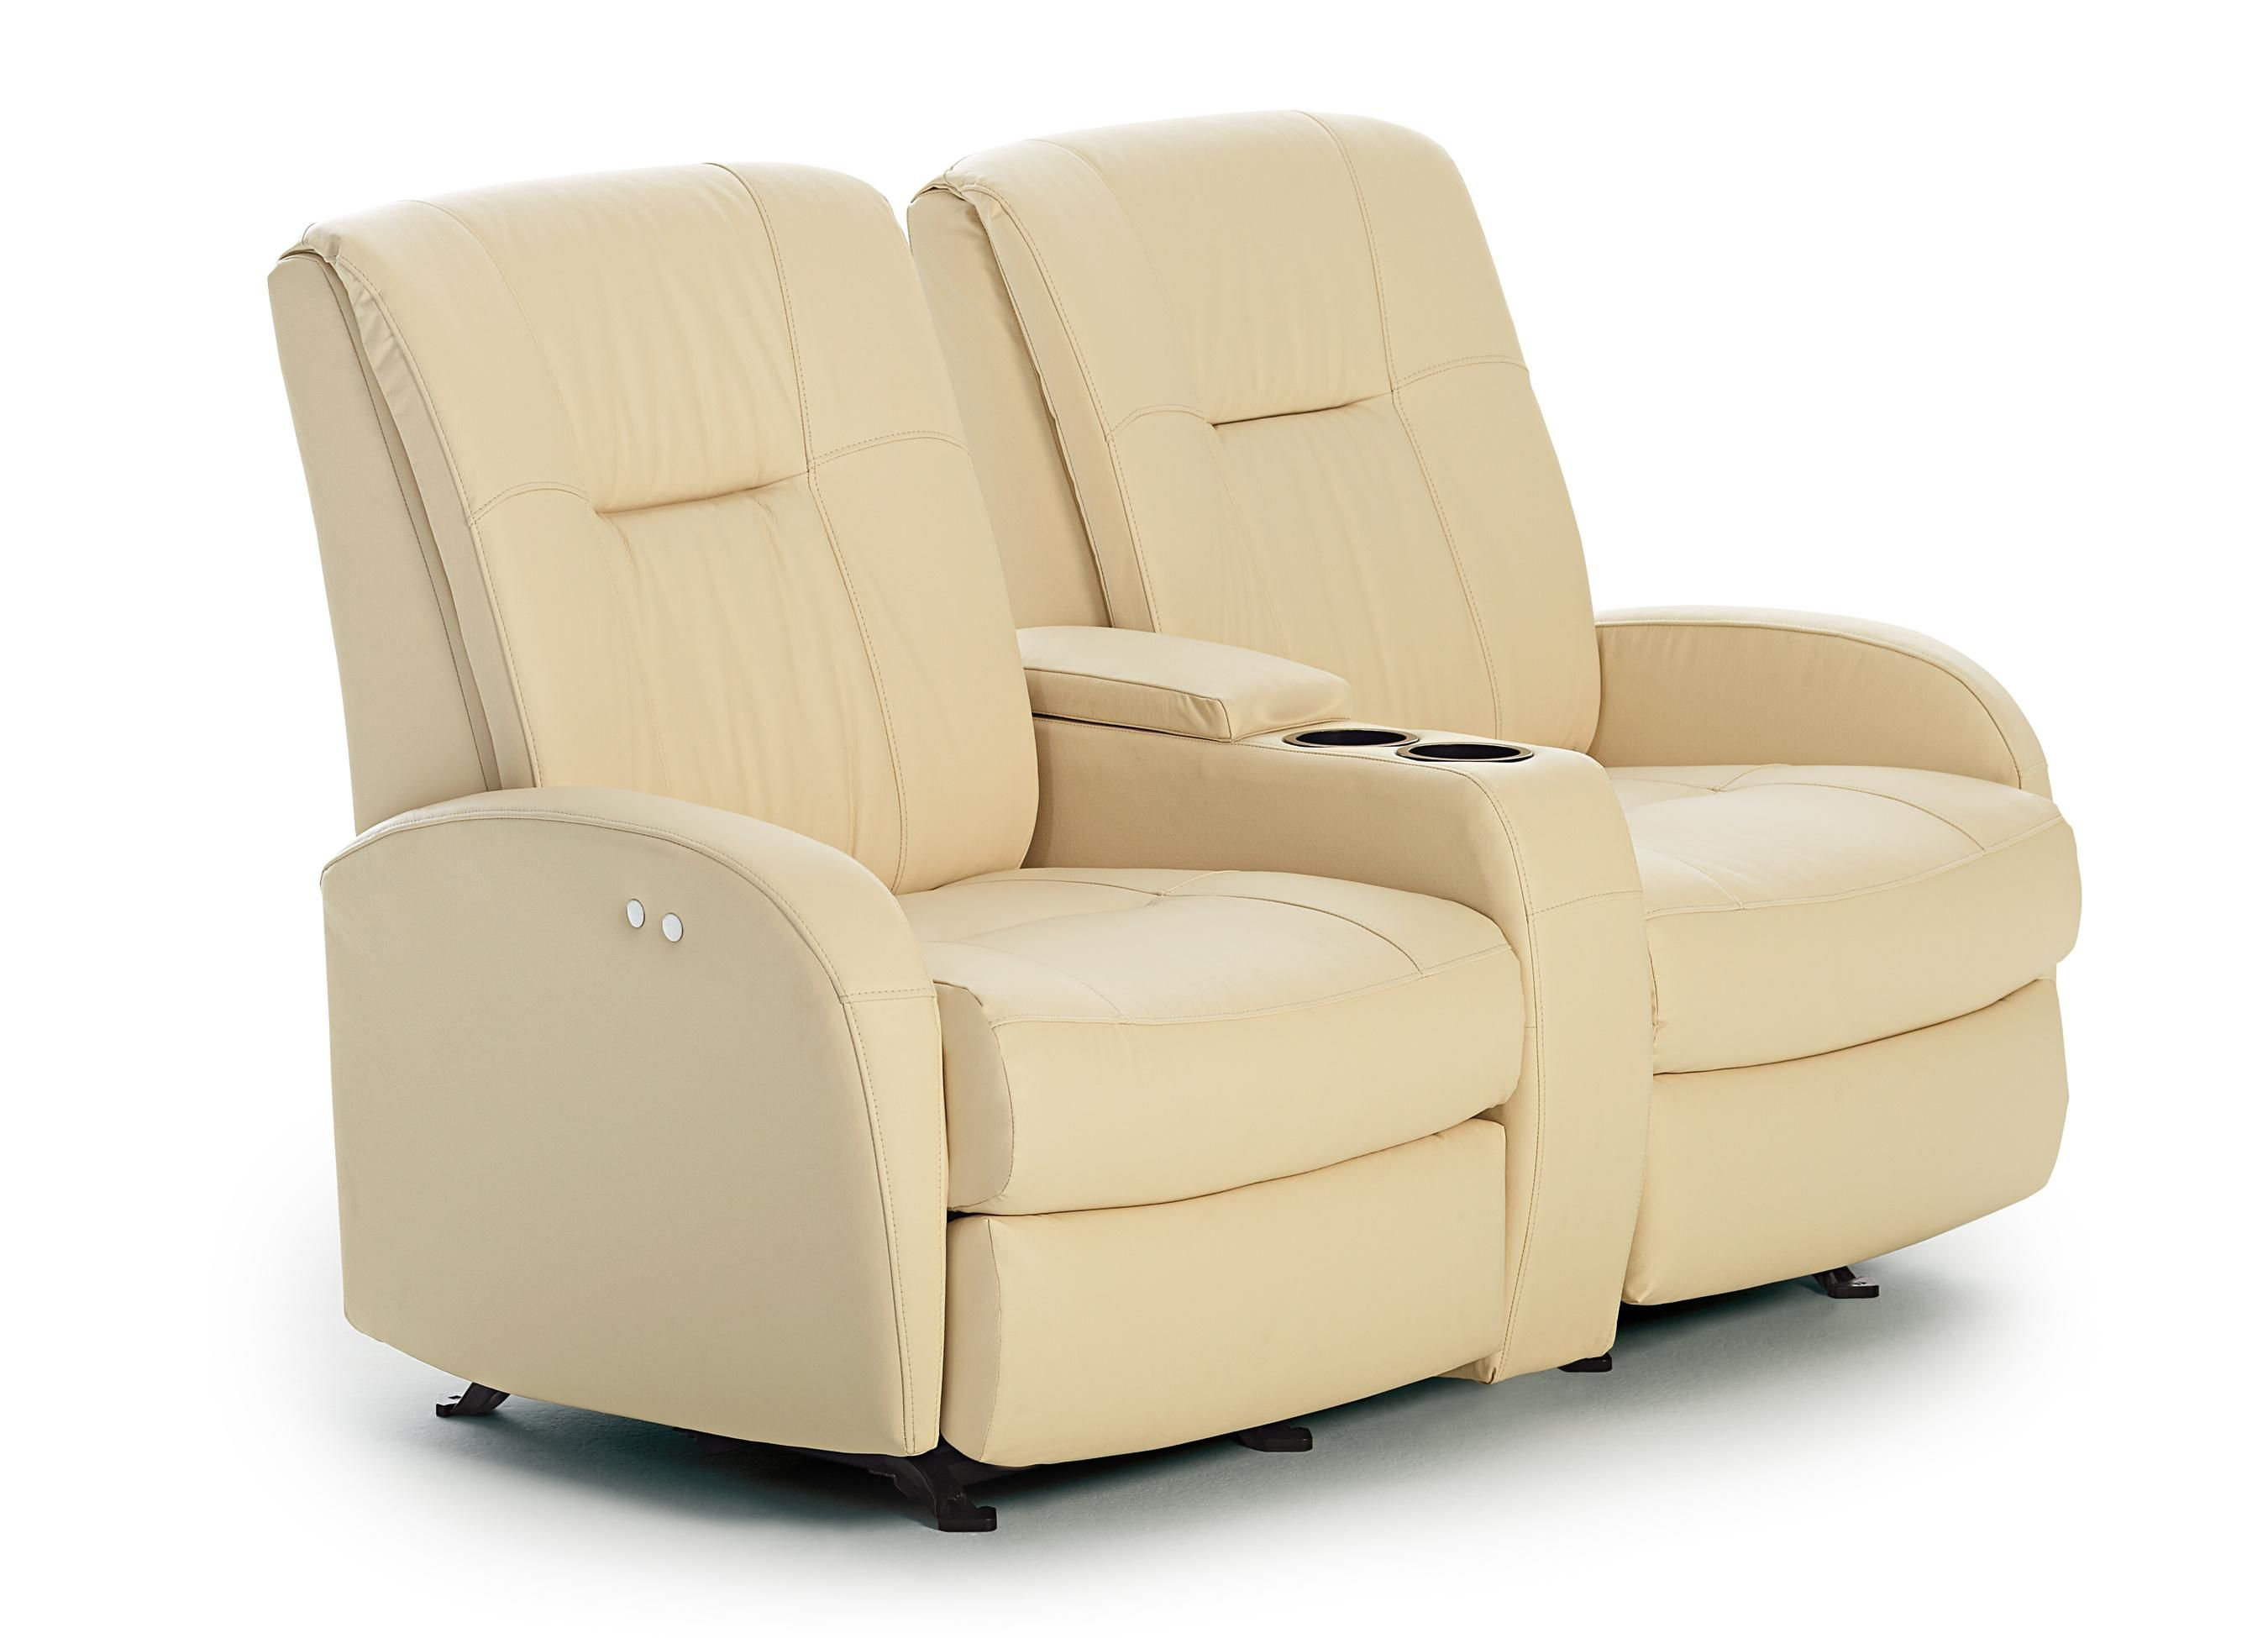 Remarkable Reclining Loveseat With Console Ruddick Contemporary Space Saver Power Reclining Loveseat With Console  sc 1 st  Pinterest : microfiber reclining loveseat with console - islam-shia.org